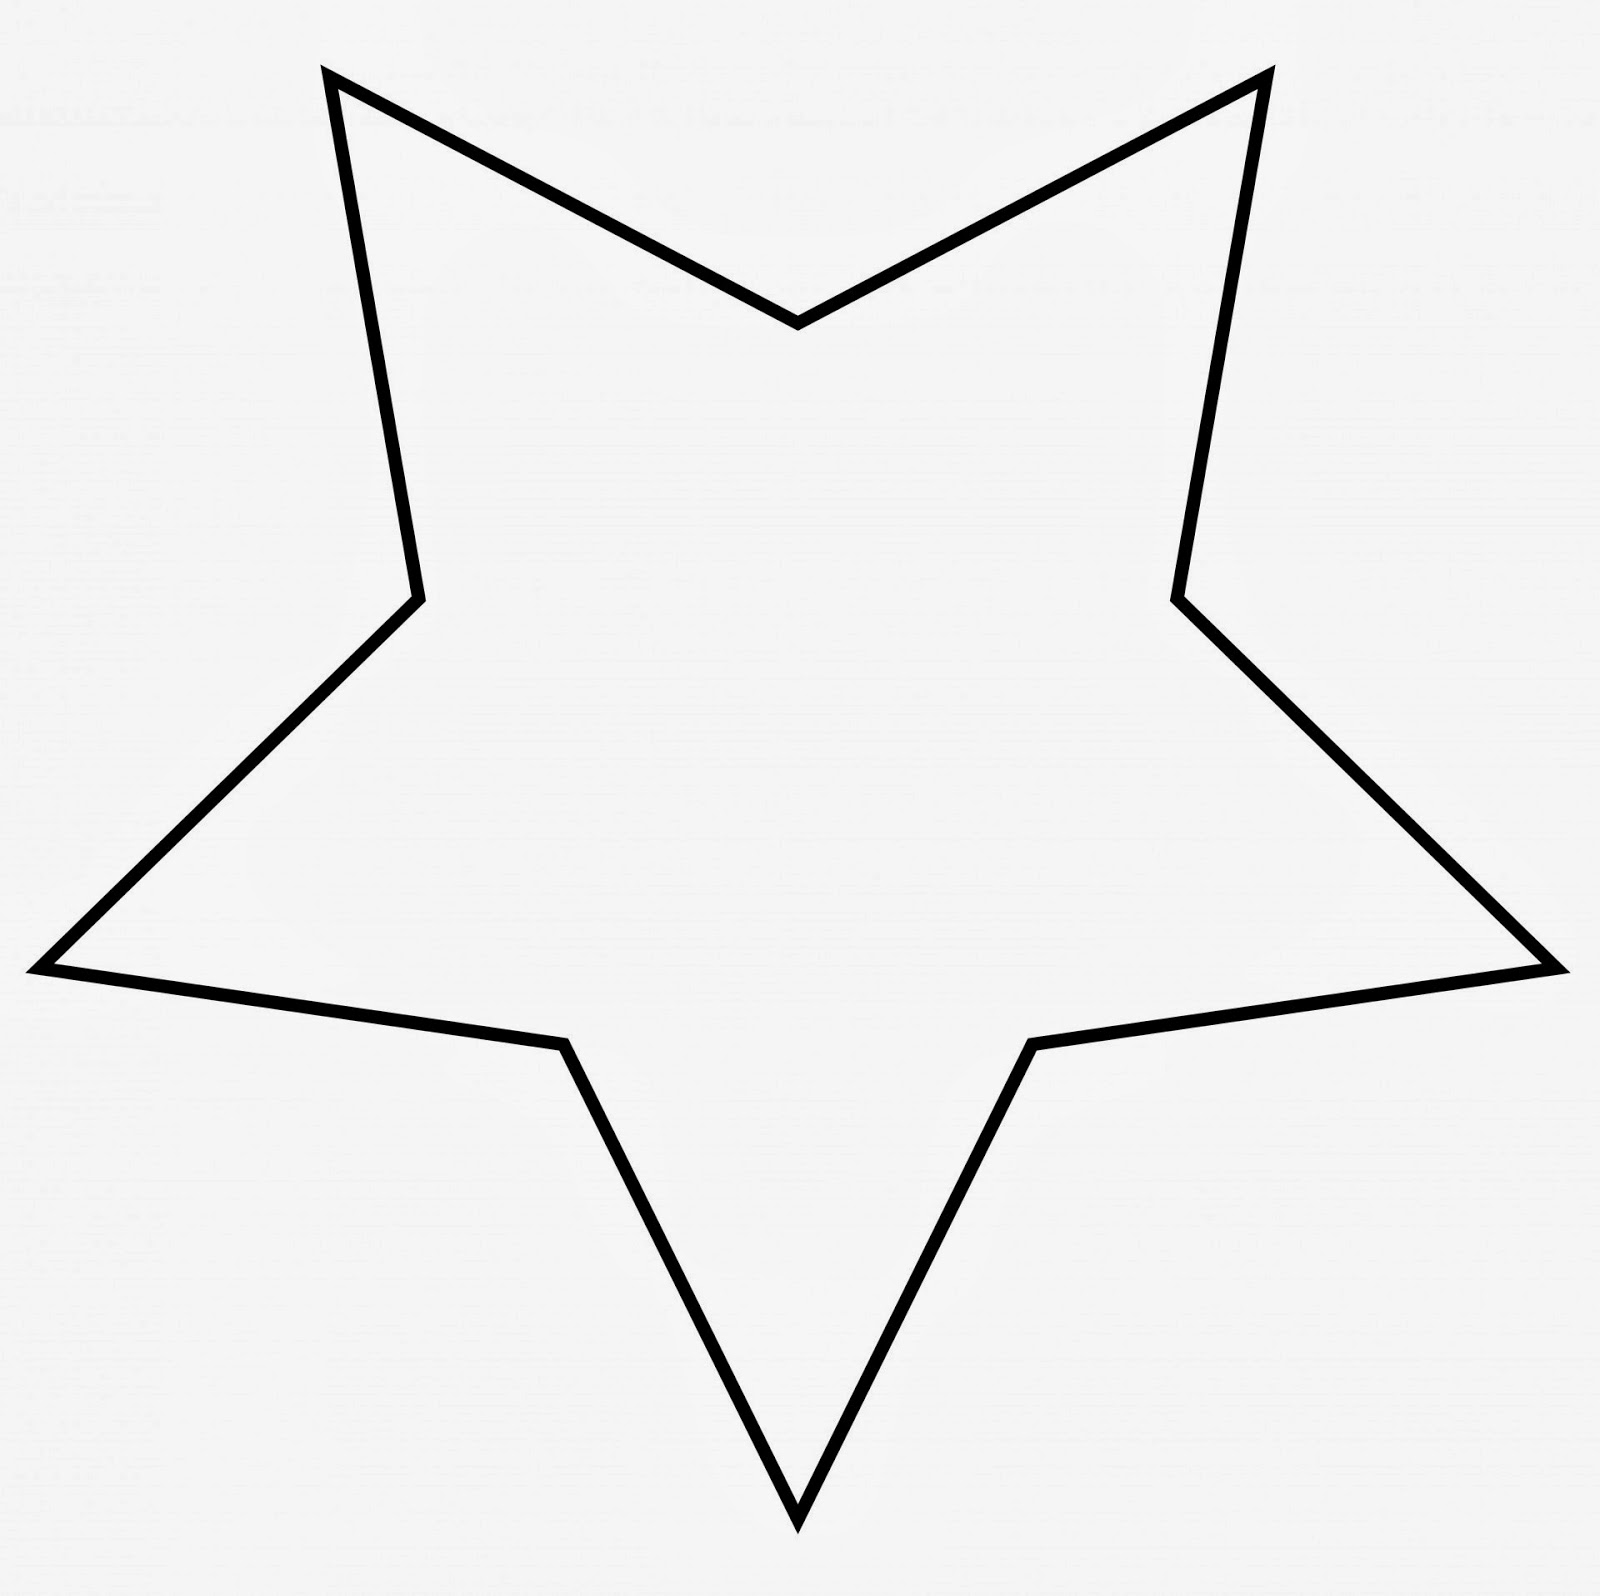 5 point star badge clipart.